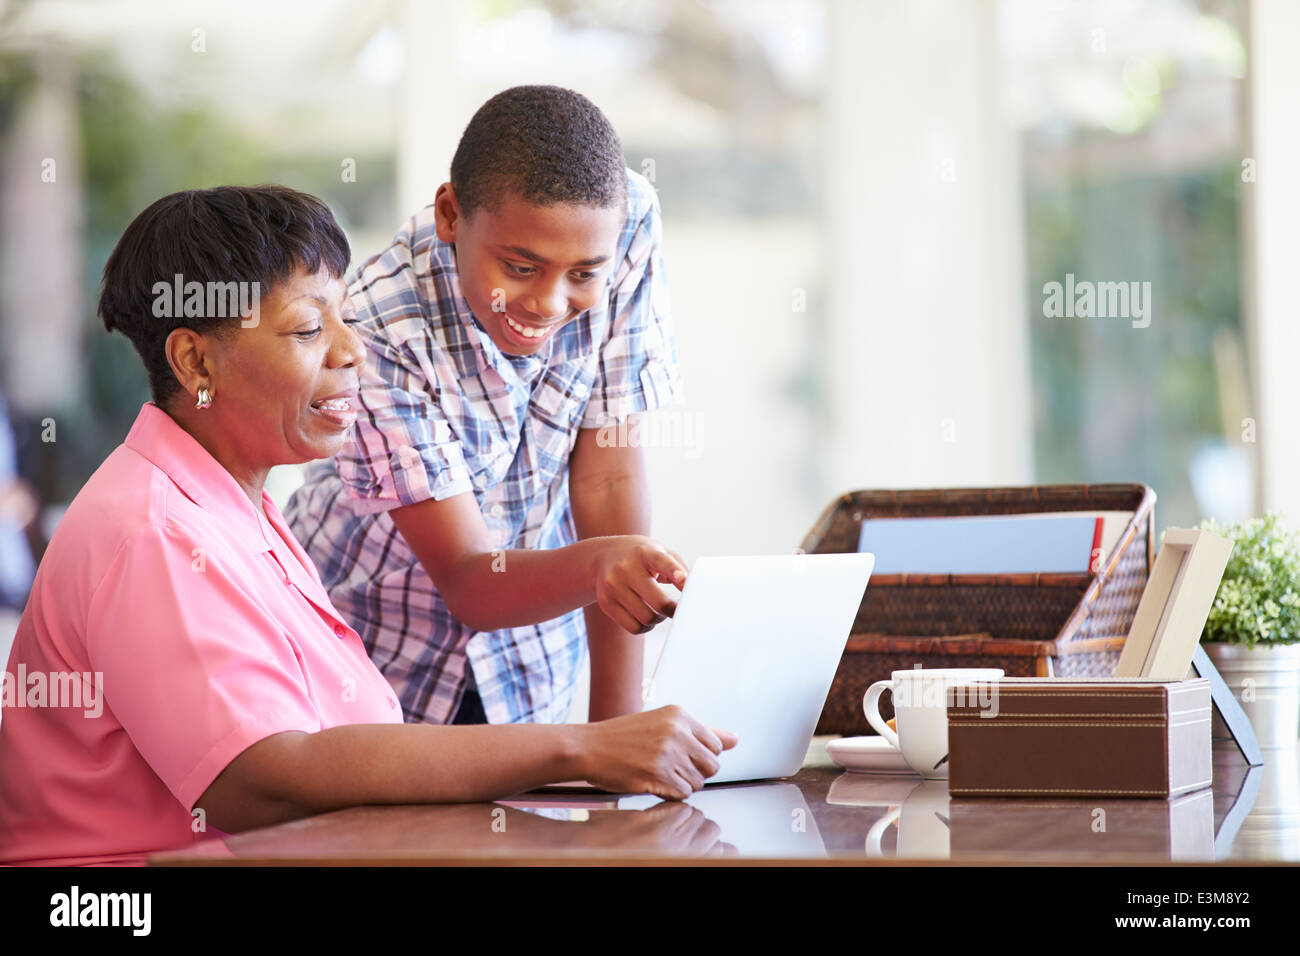 Grandson Helping Grandmother With Laptop - Stock Image